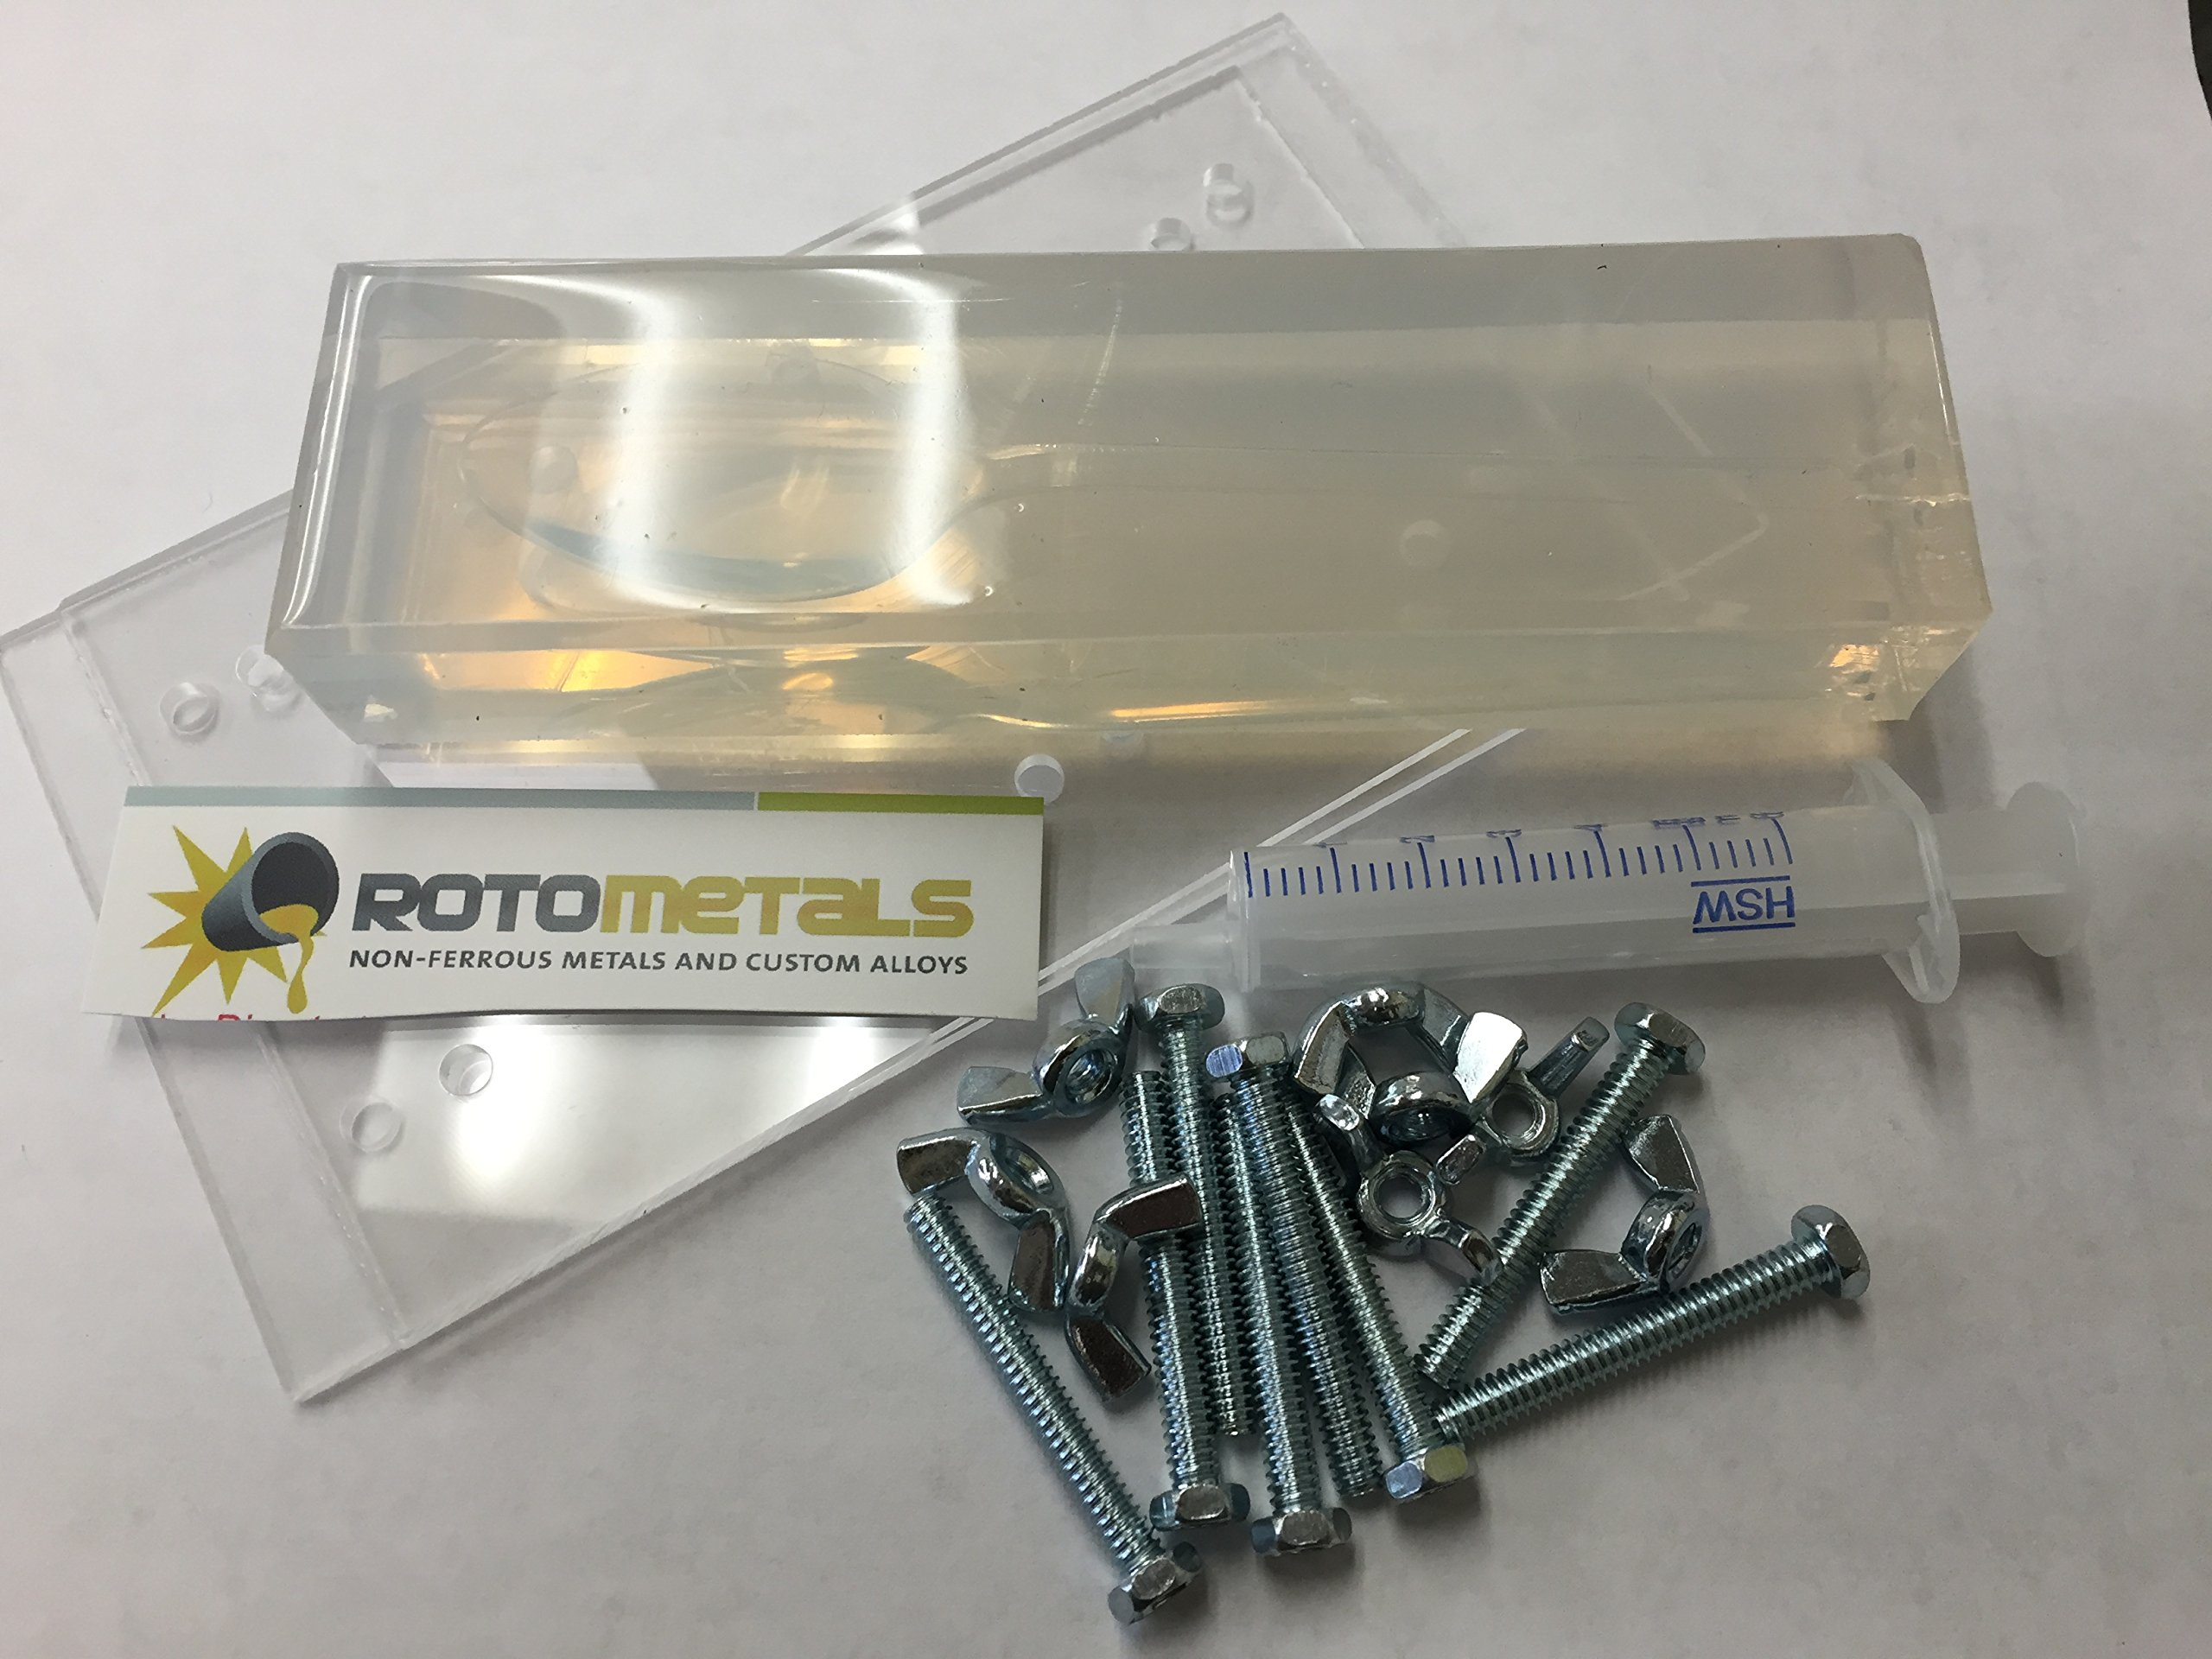 RotoMetals Gallium Spoon Mold-Create a Magic Disappearing/Bending/Melting Gallium Spoon, Includes Syringe by Roto Metals